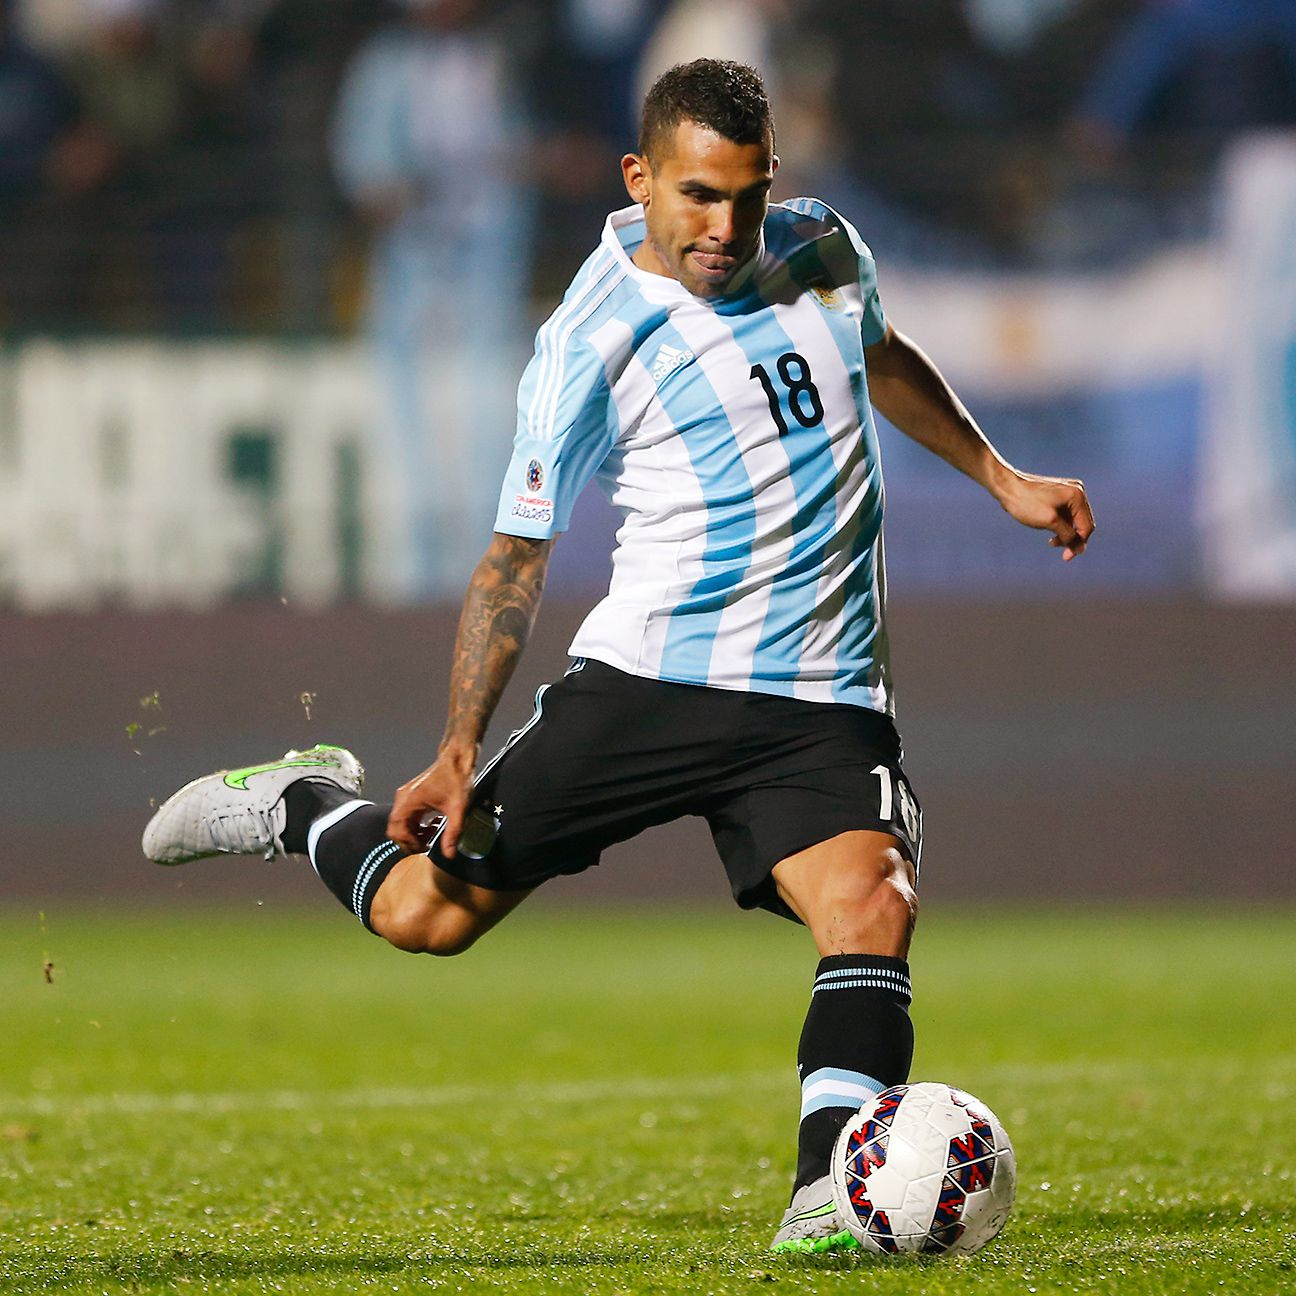 Carlos Tevez, who missed the decisive penalty in Argentina's 2011 quarterfinal defeat versus Uruguay, came through with the winner against Colombia on Friday.